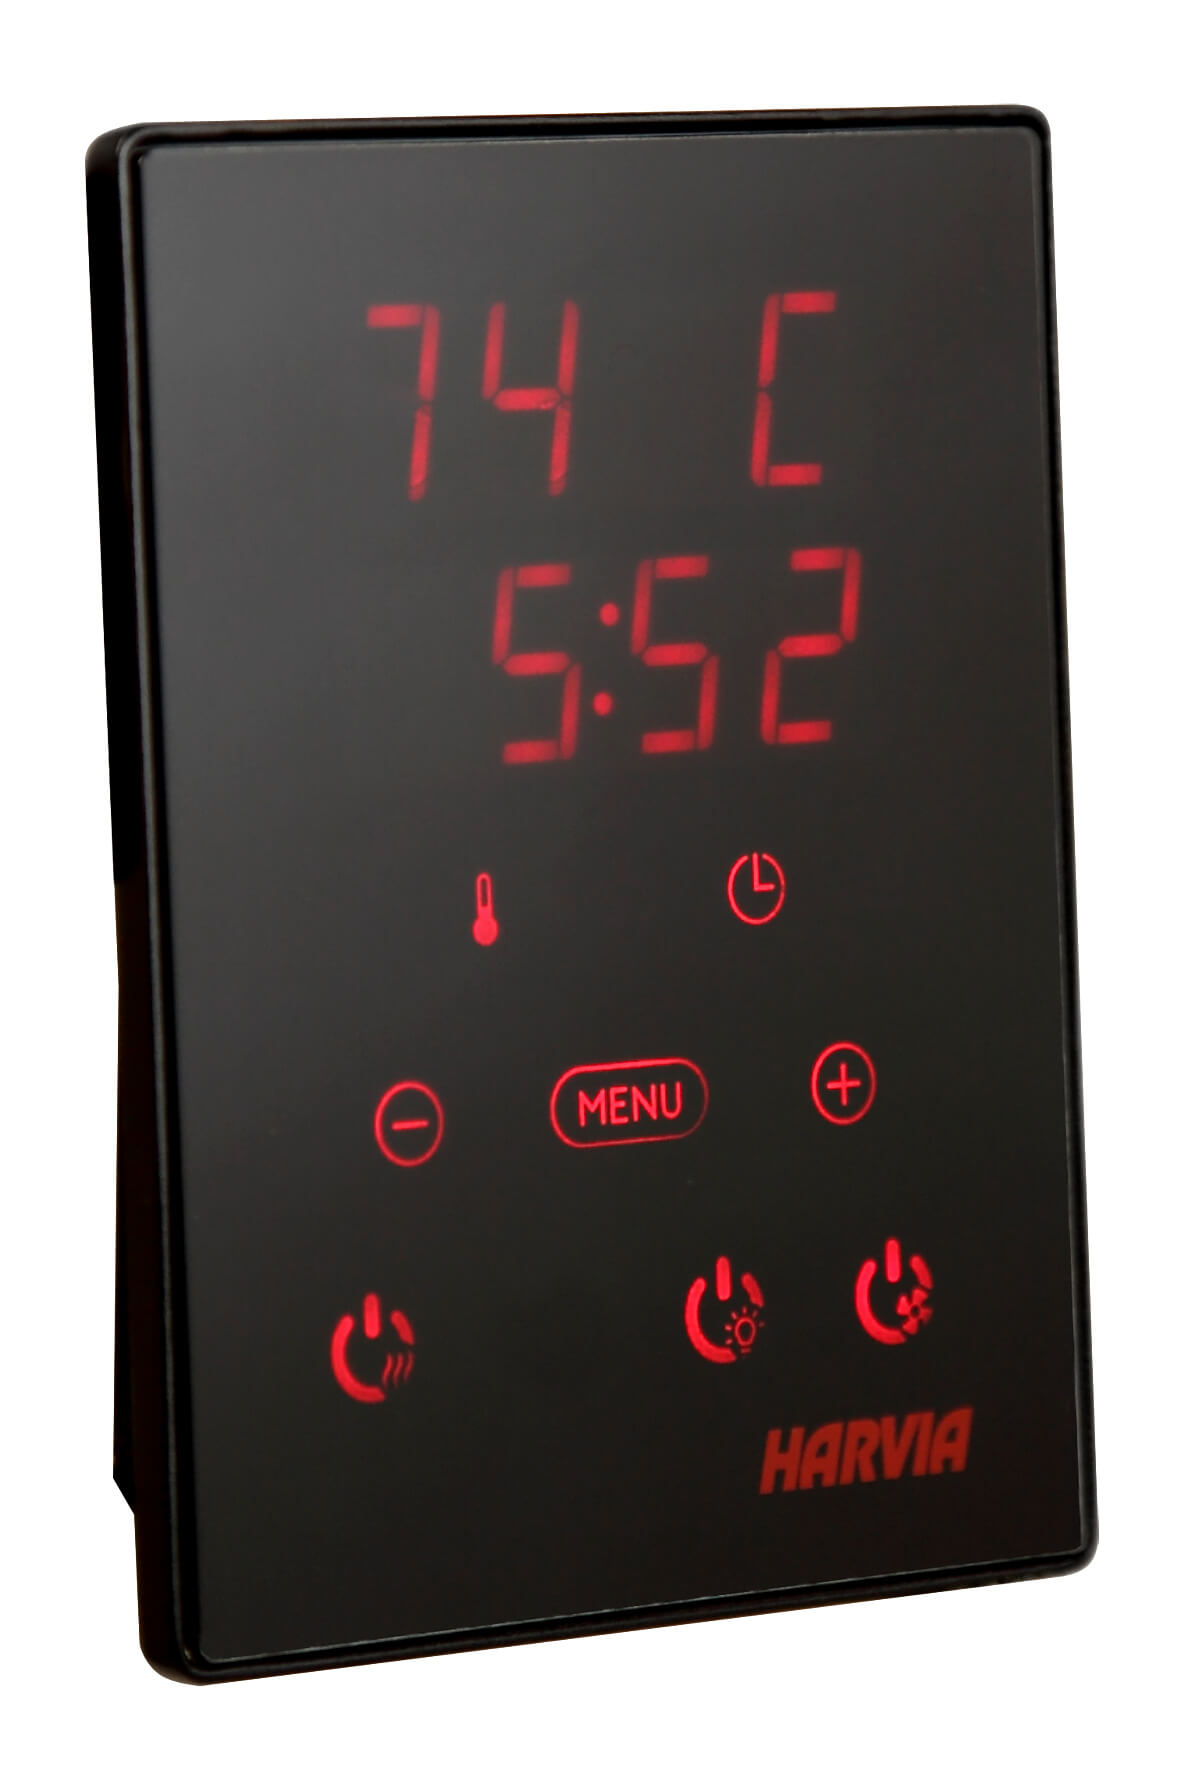 harvia xenio wifi cx170 control panel